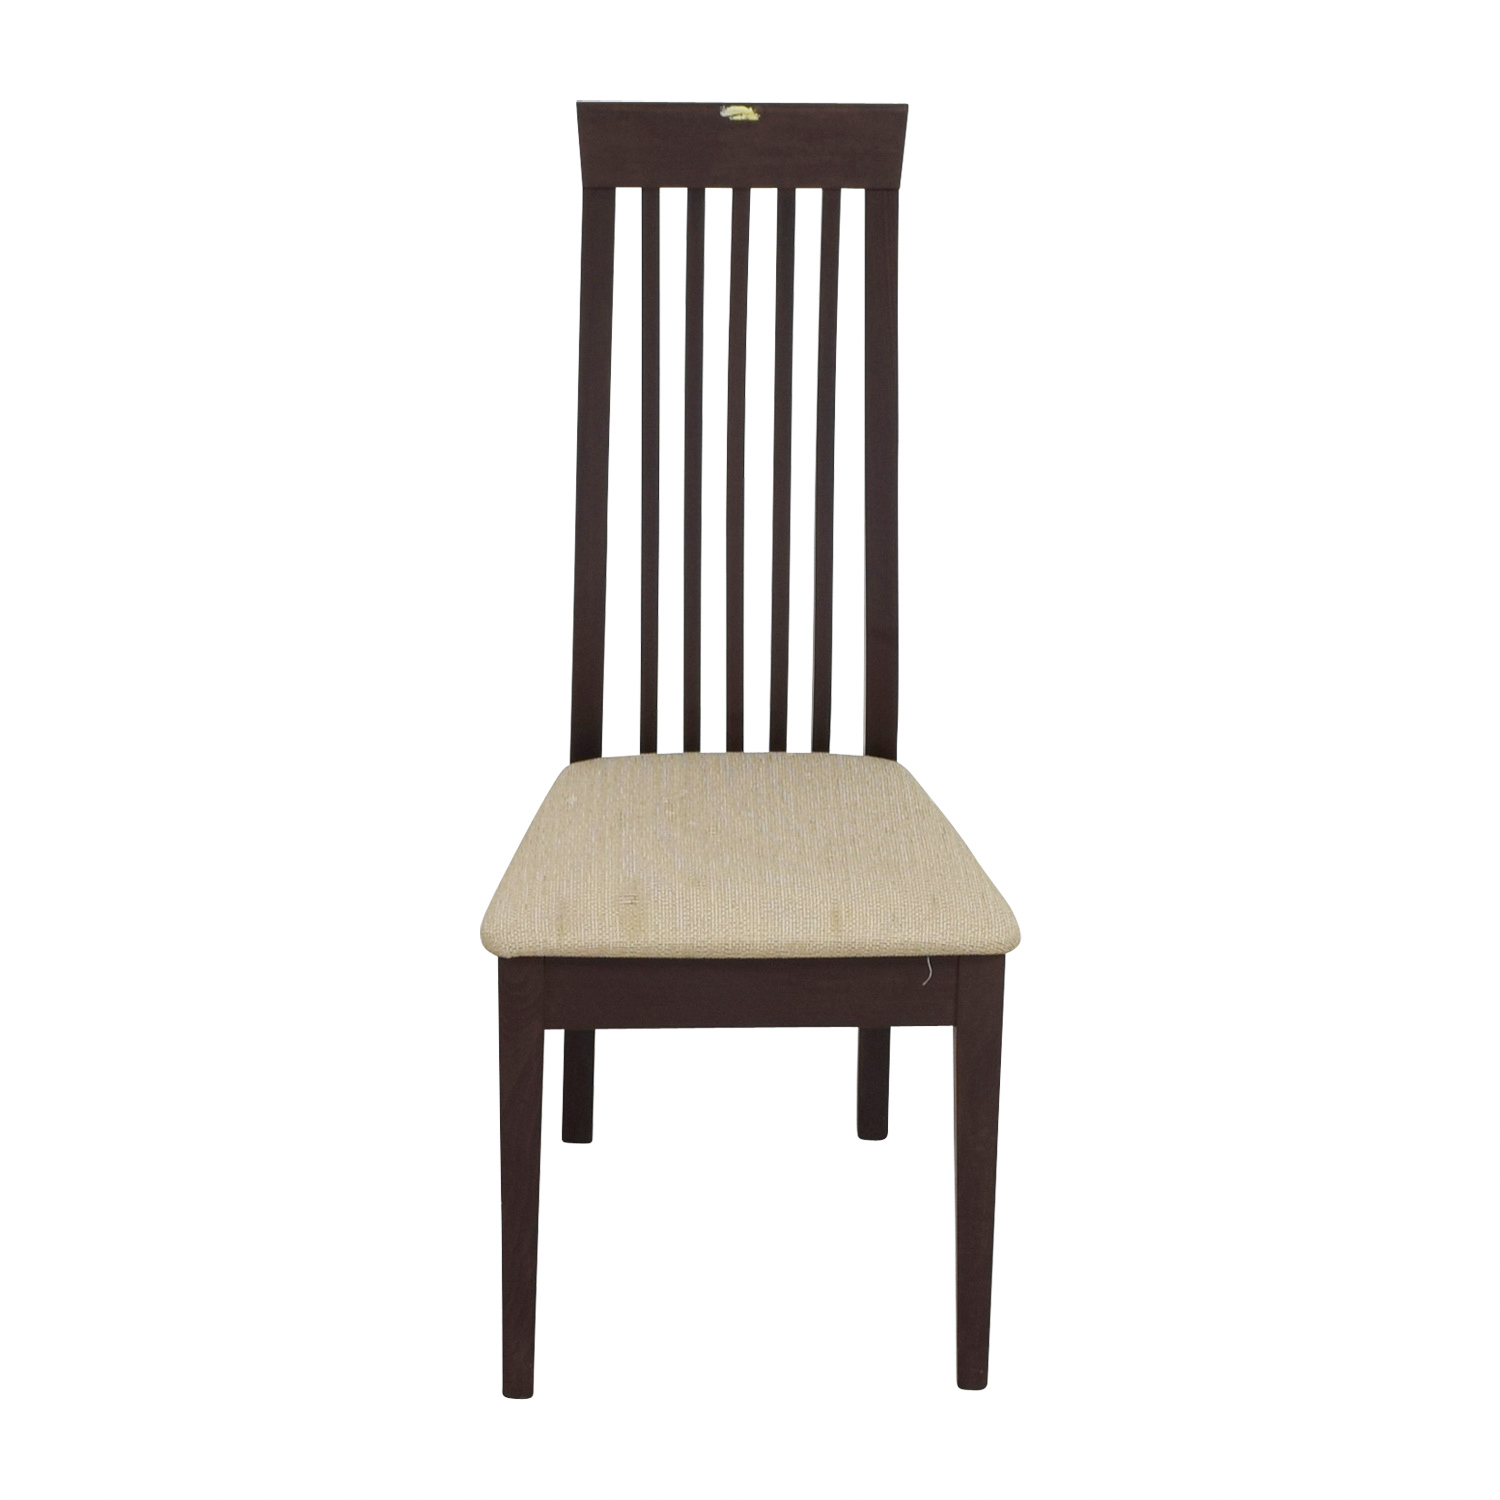 buy Wood Vertical Slat Back with Tan Cushioned Chair